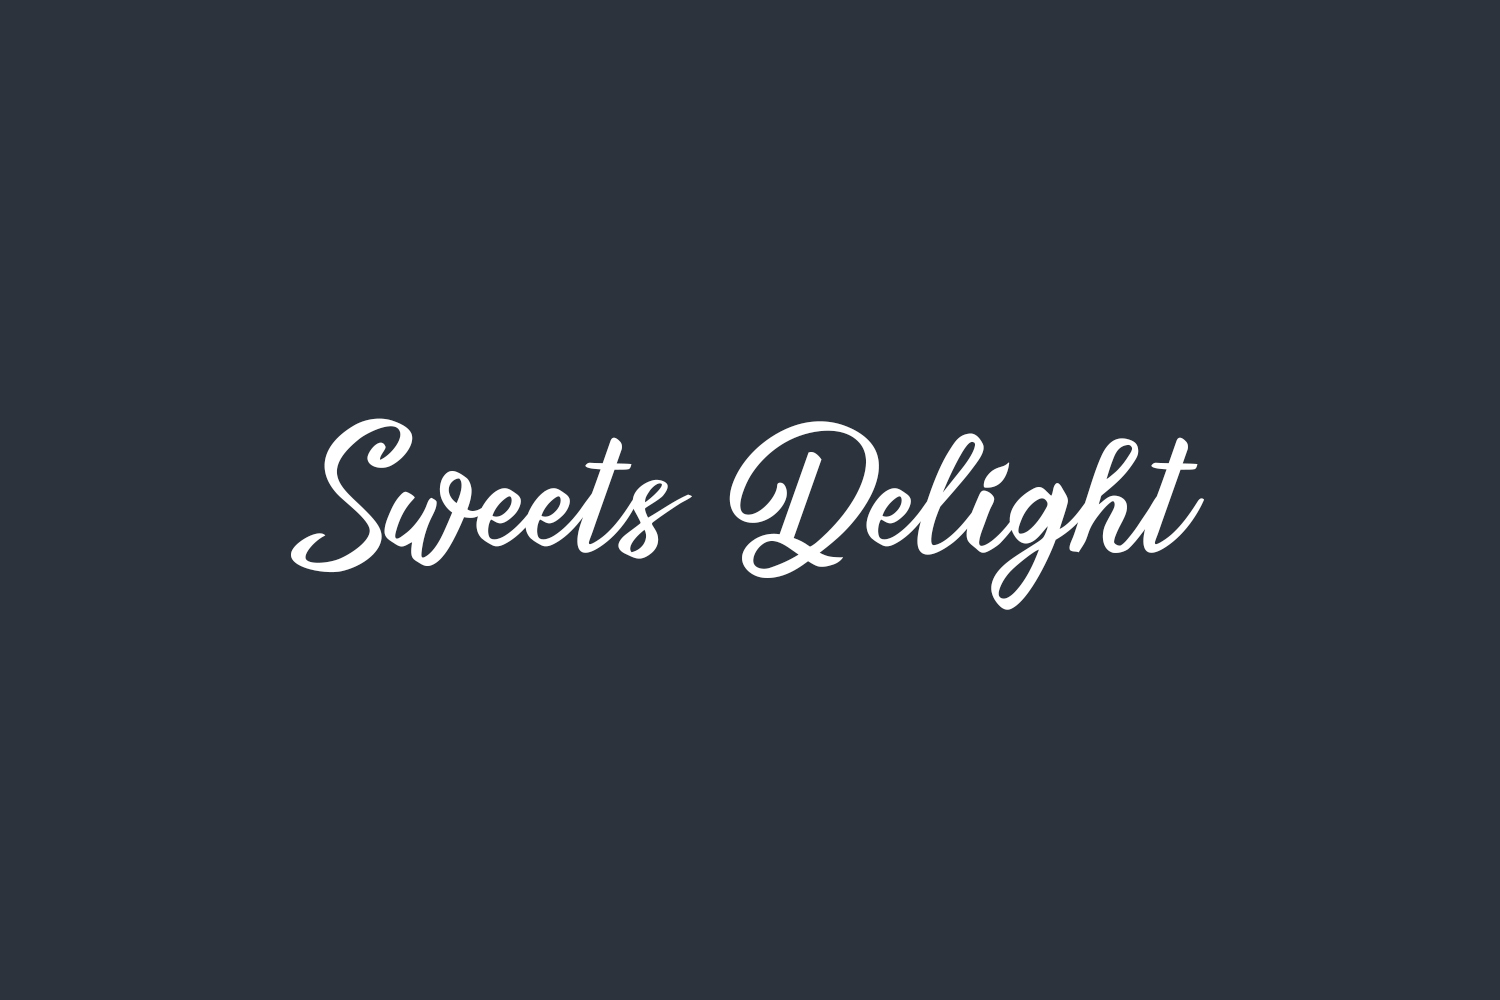 Sweets Delight Free Font